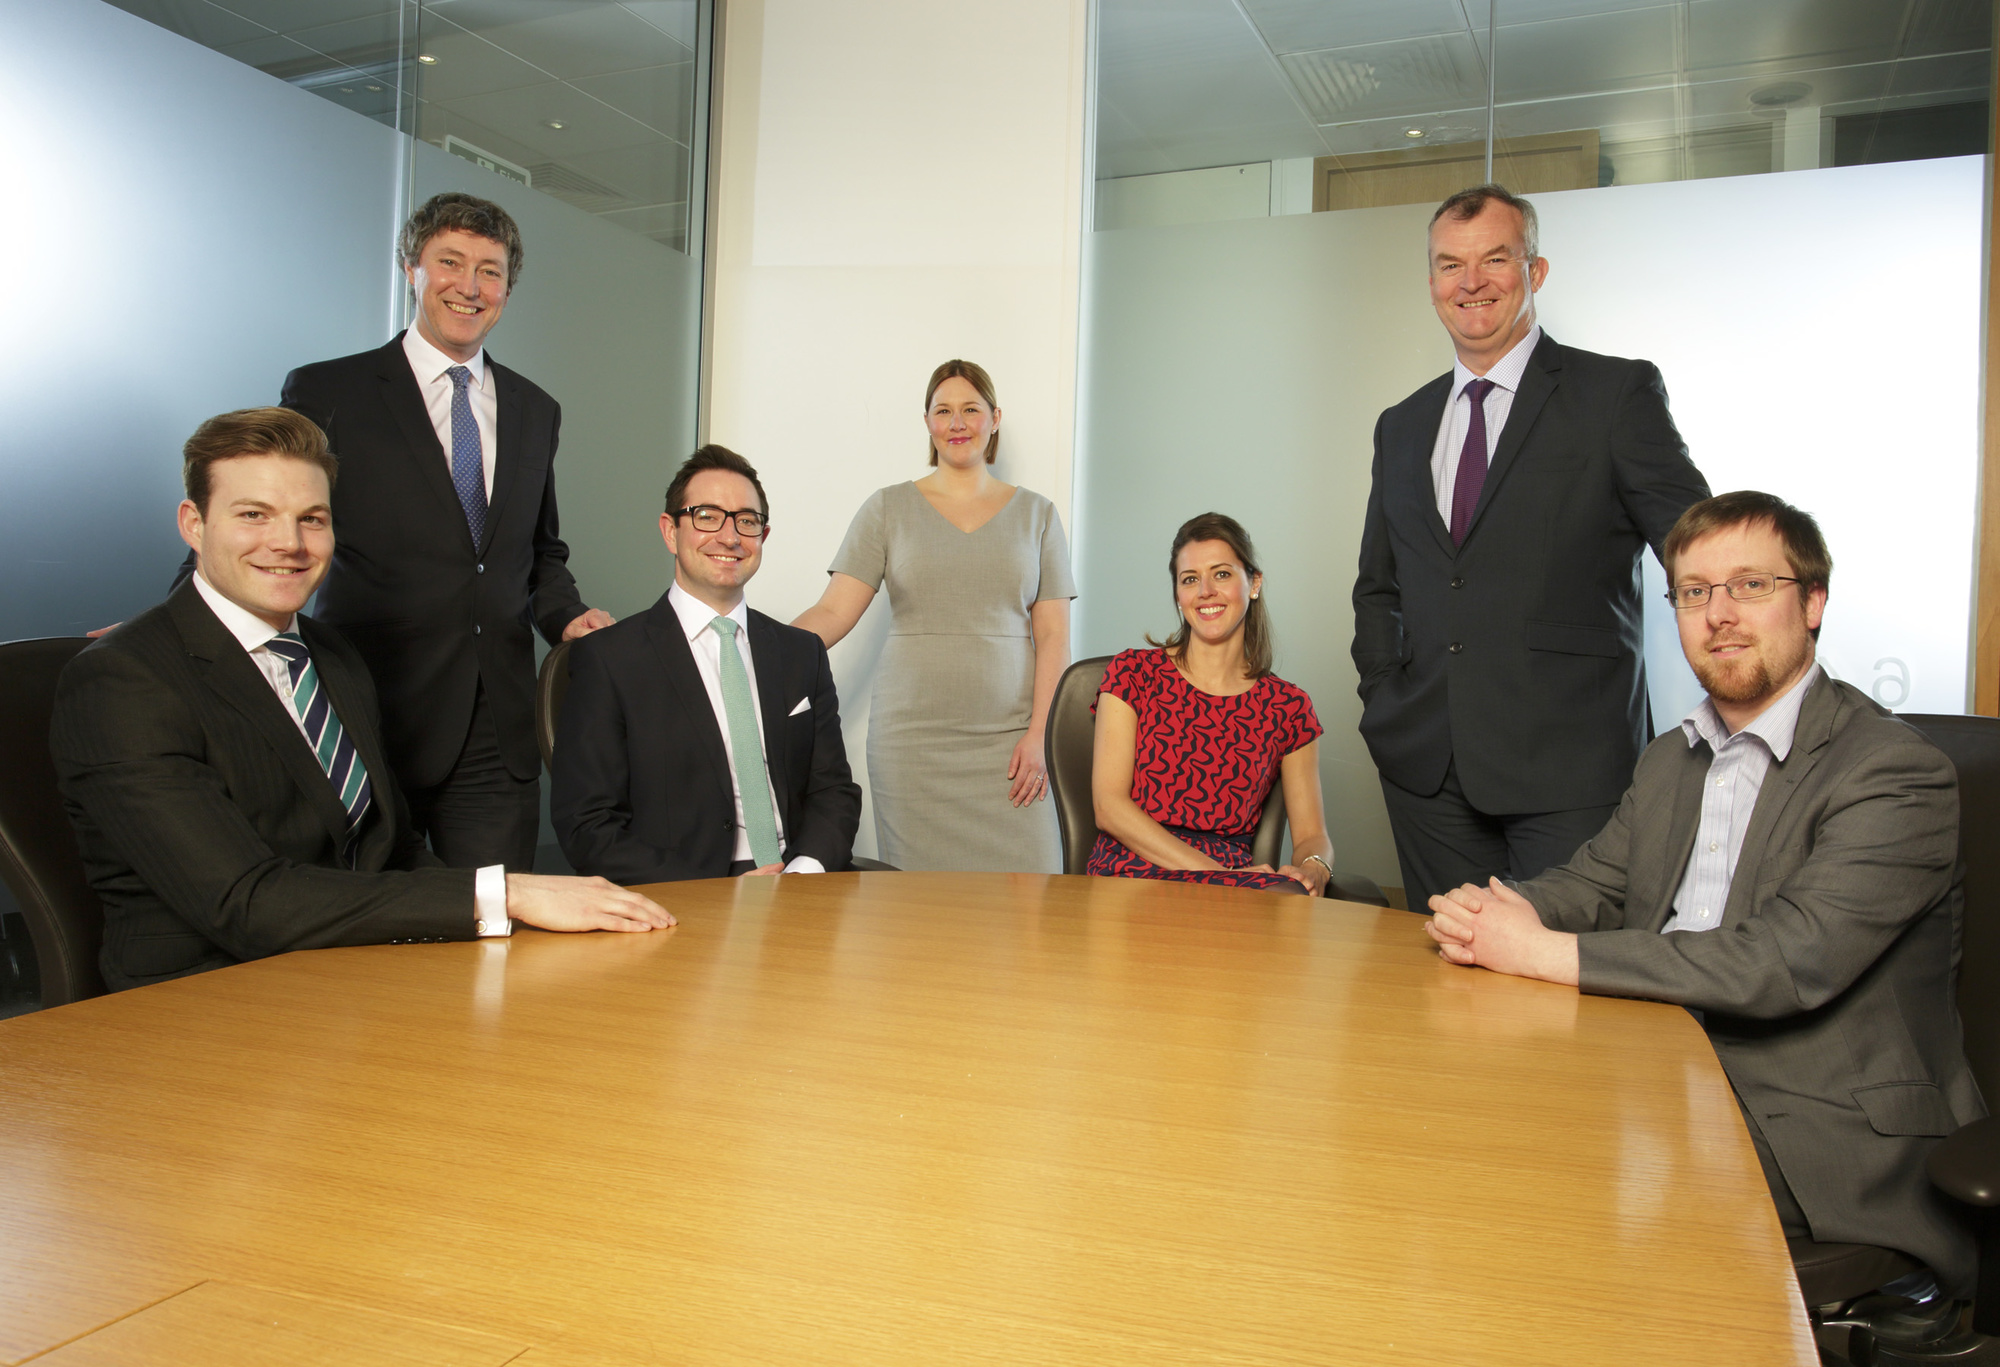 Partners Andrew Davison, Gail Bennett and Jonathan Combe (standing) with the newly promoted Associates.